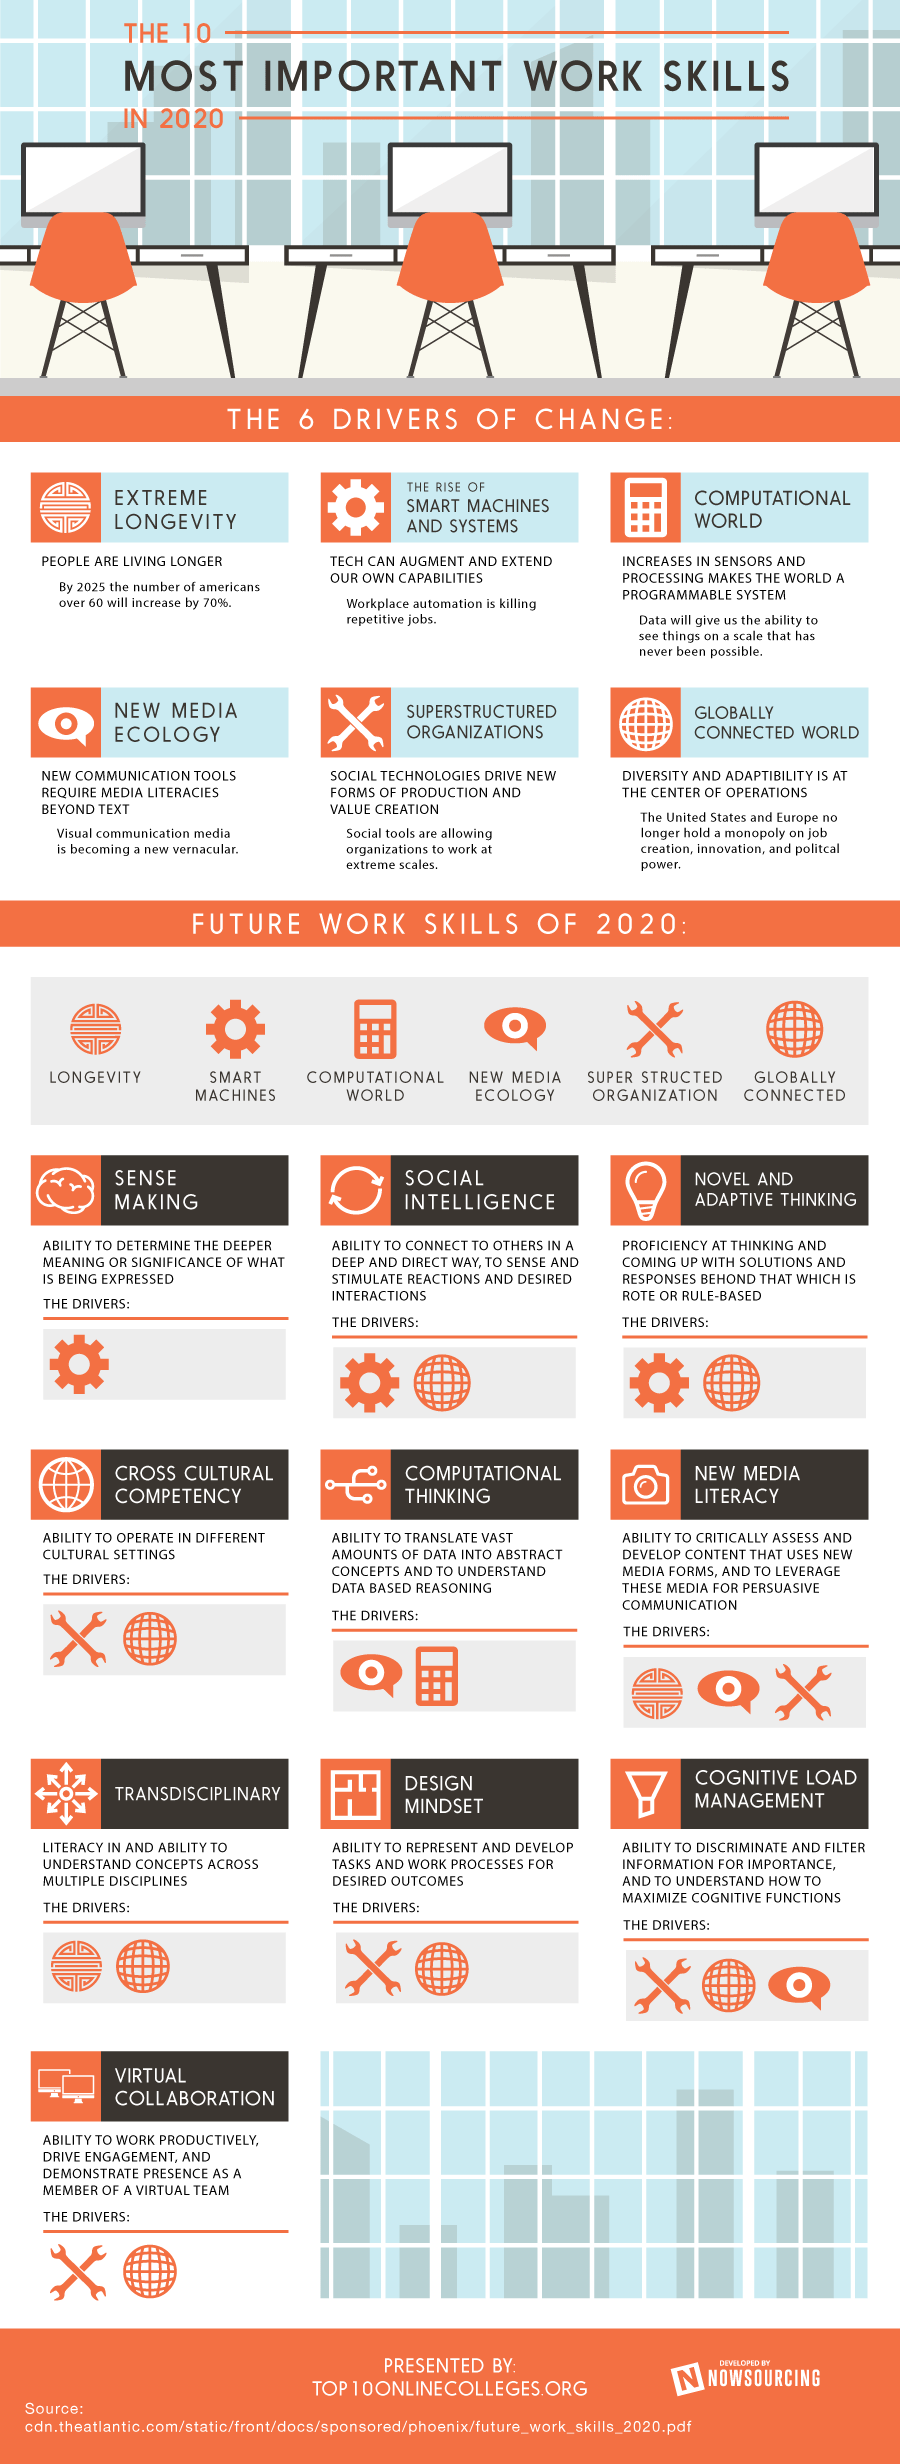 The Top Work Skills for 2020